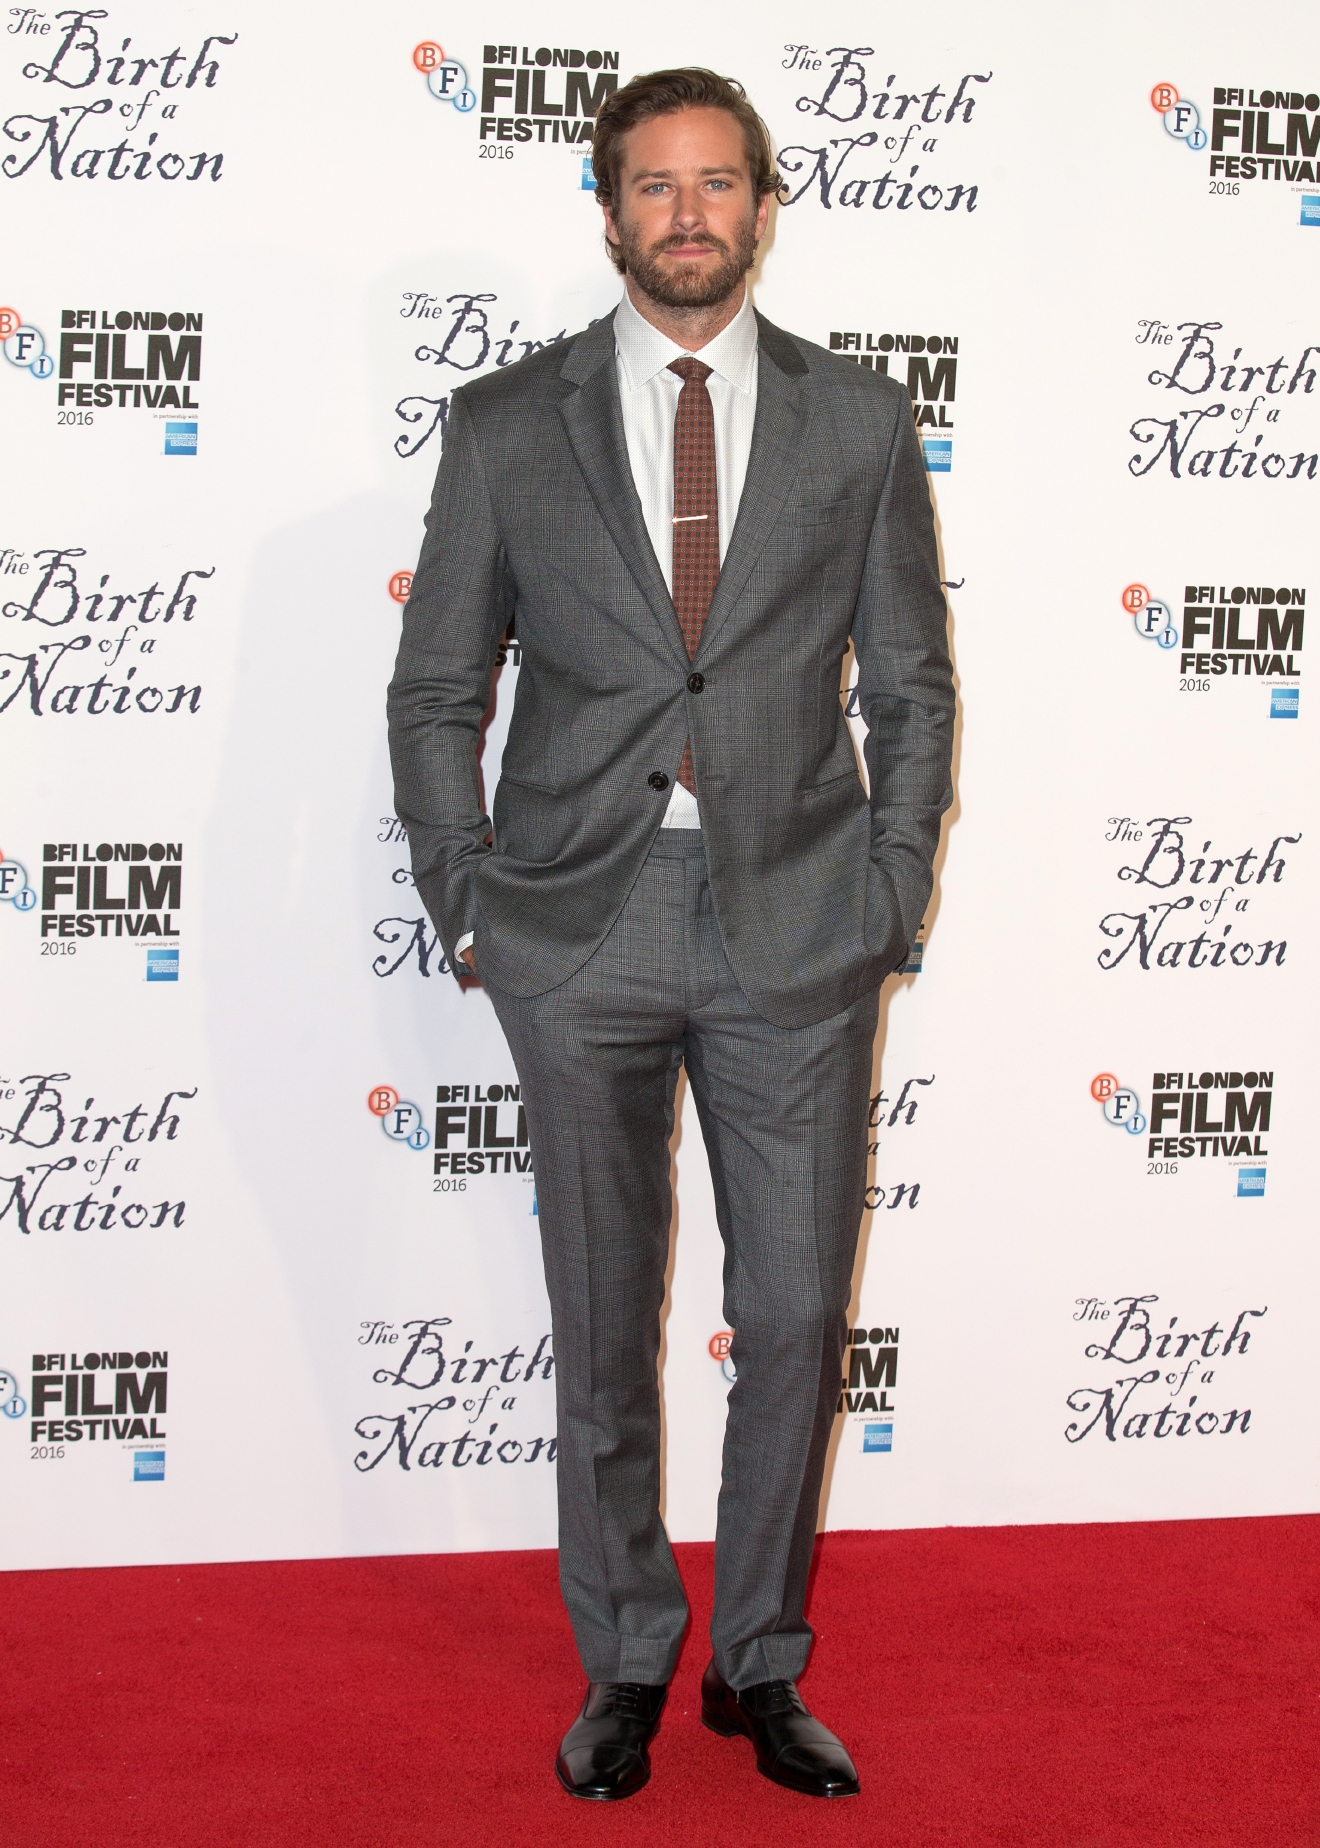 The BFI LLF  Headline Gala of 'Birth Of A Nation' held at the Odeon Leicester Square - ArrivalsFeaturing: Armie HammerWhere: London, United KingdomWhen: 11 Oct 2016Credit: Mario Mitsis/WENN.com